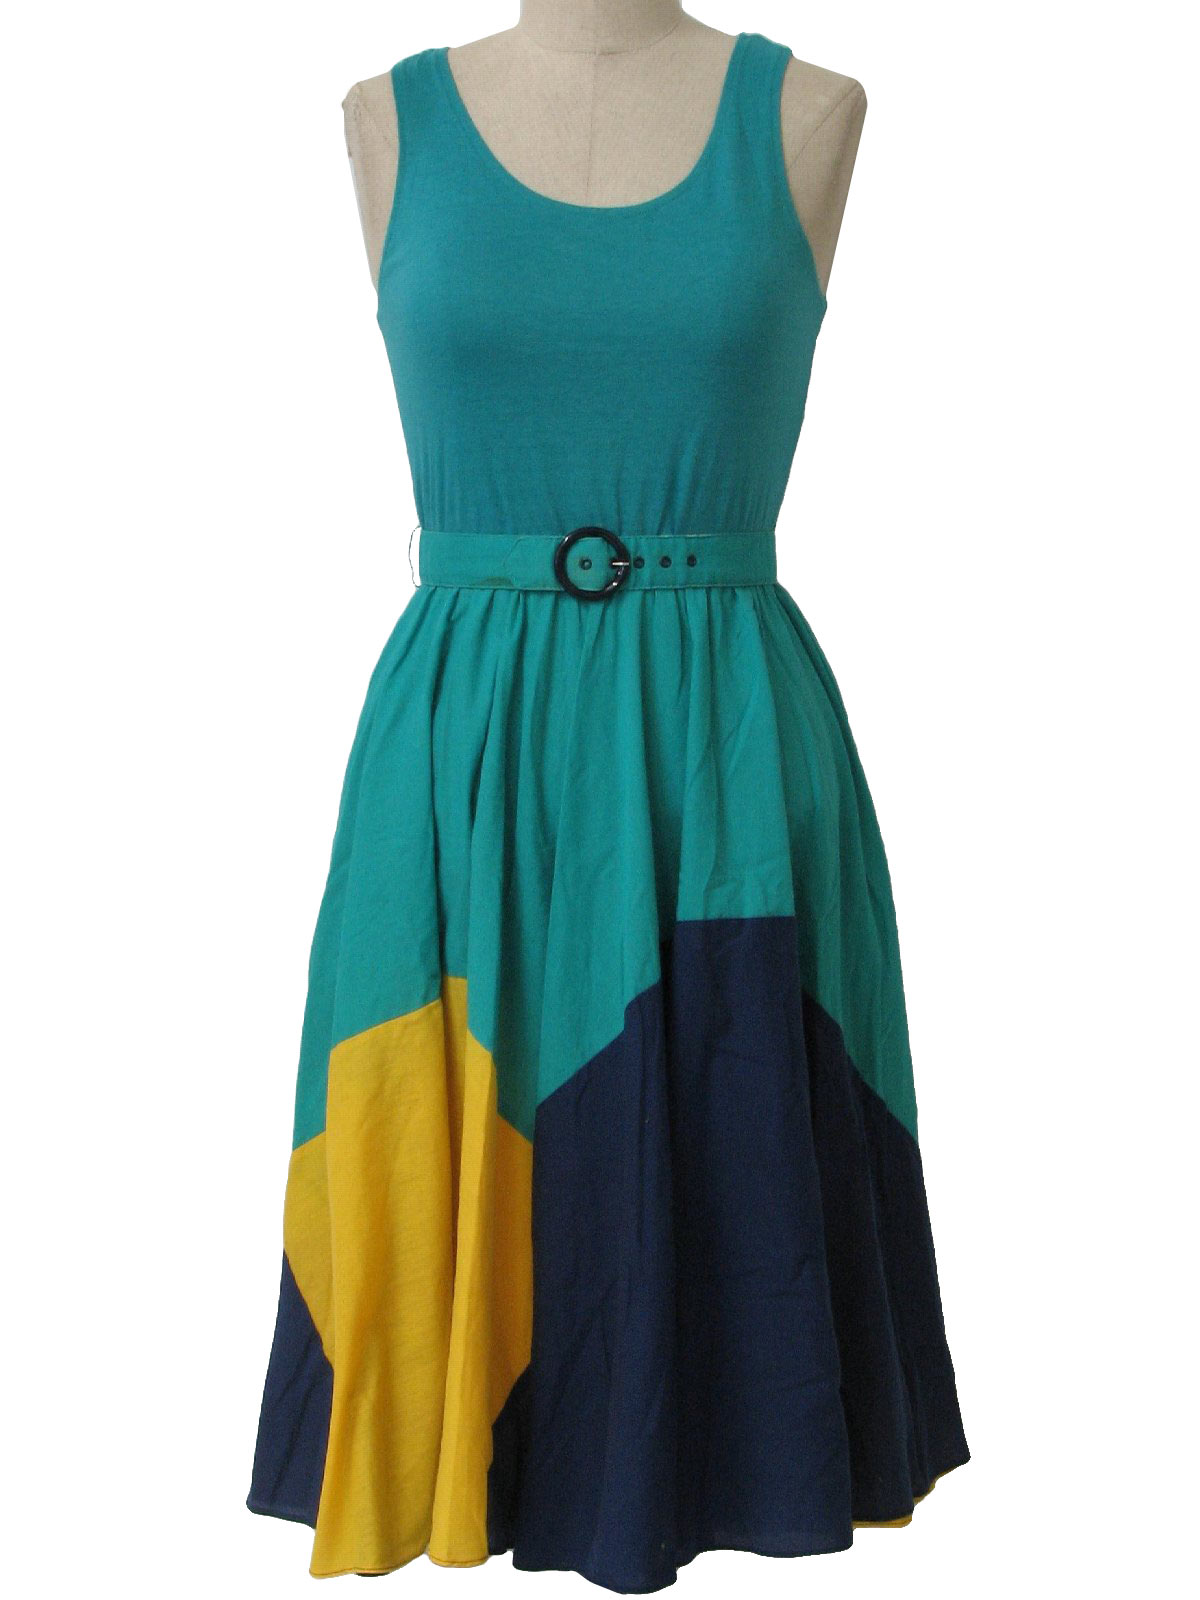 PKs Closet 1980s Vintage Dress: 80s -PKs Closet- Womens teal green ...